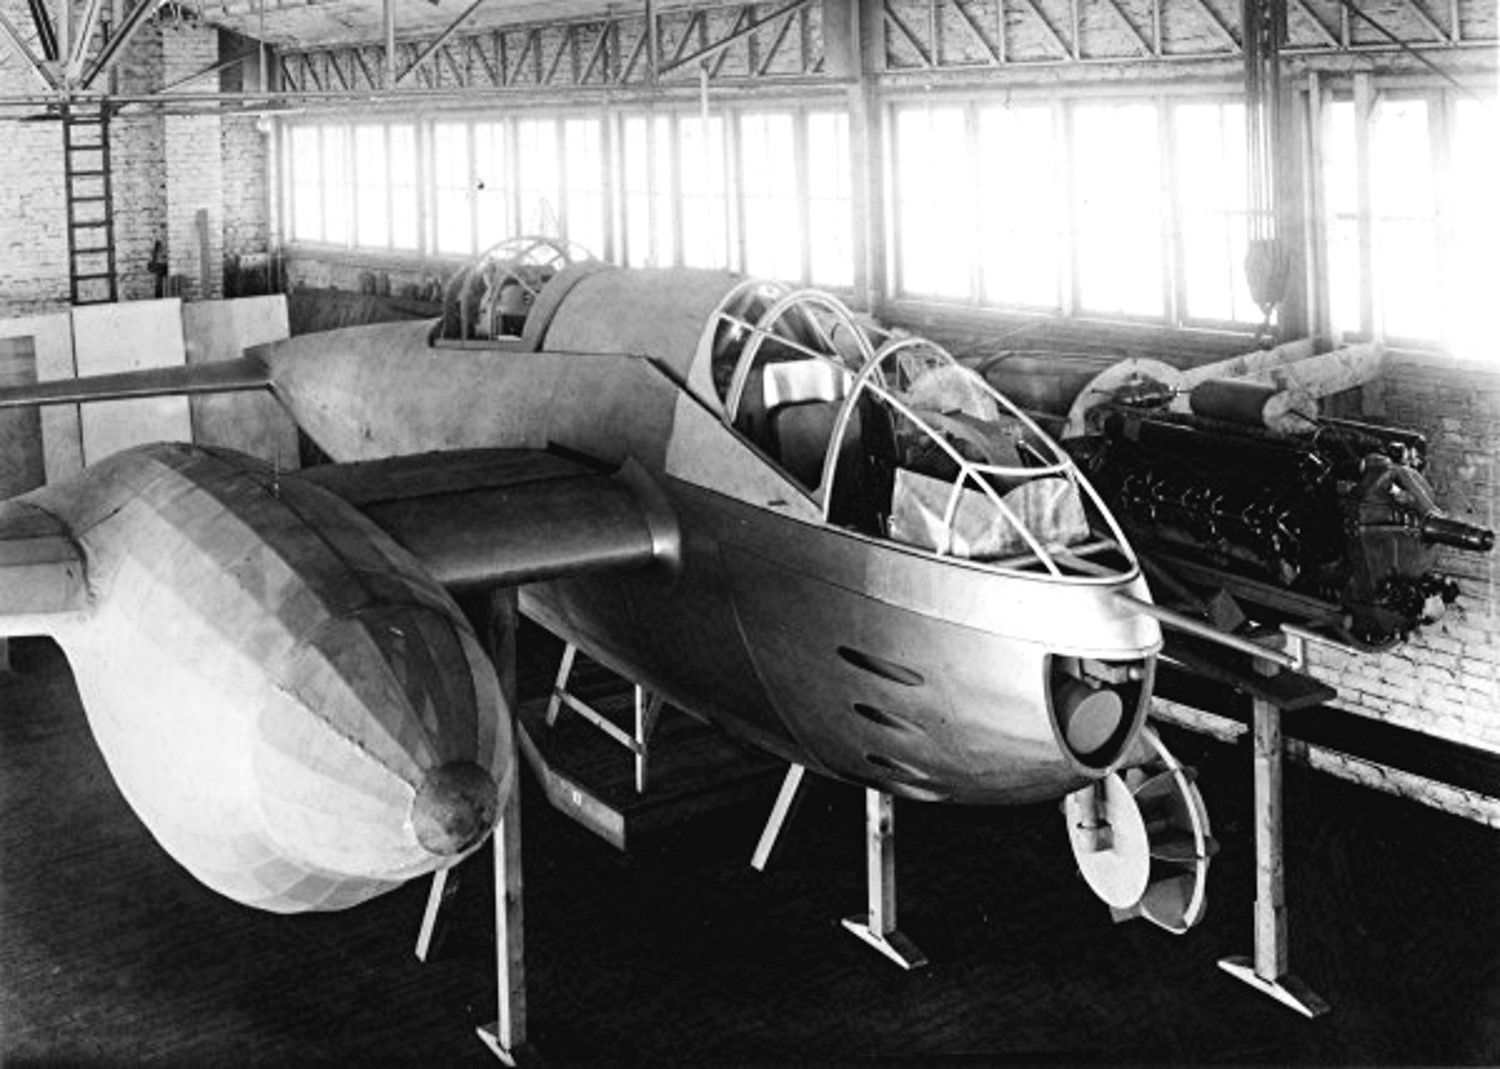 _-c-a-p-r-a-r40-twin-engined-fighter-jpg